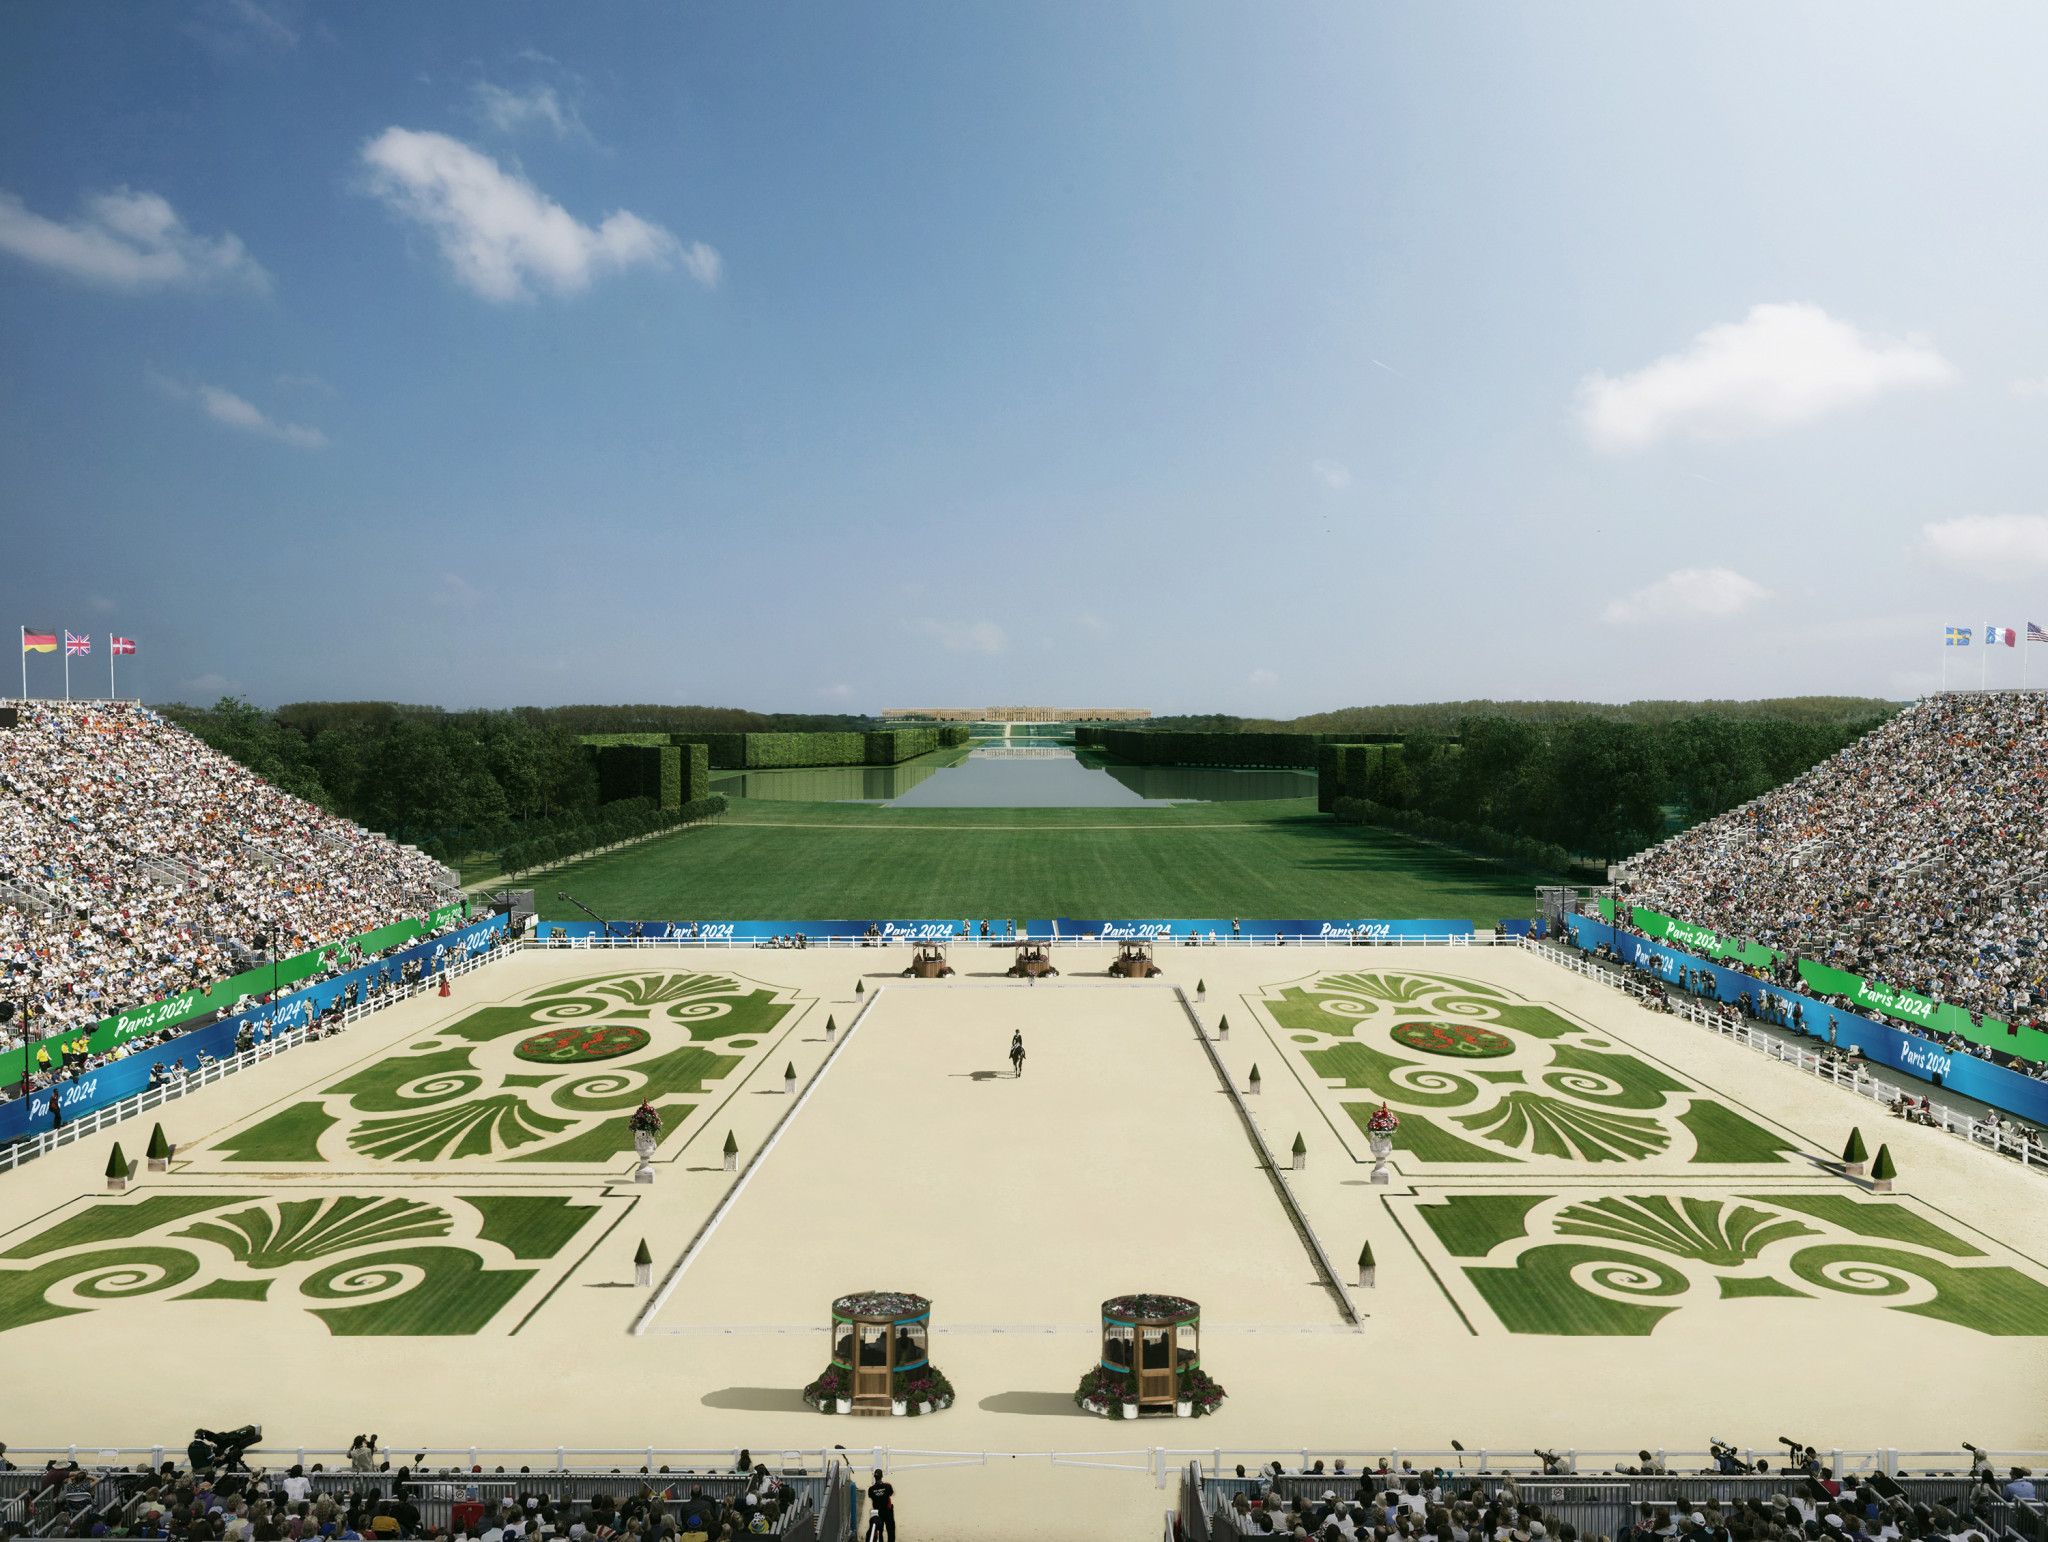 Equestrian will remain in Versailles after Paris 2024 confirmed the venue for the sport ©Paris 2024